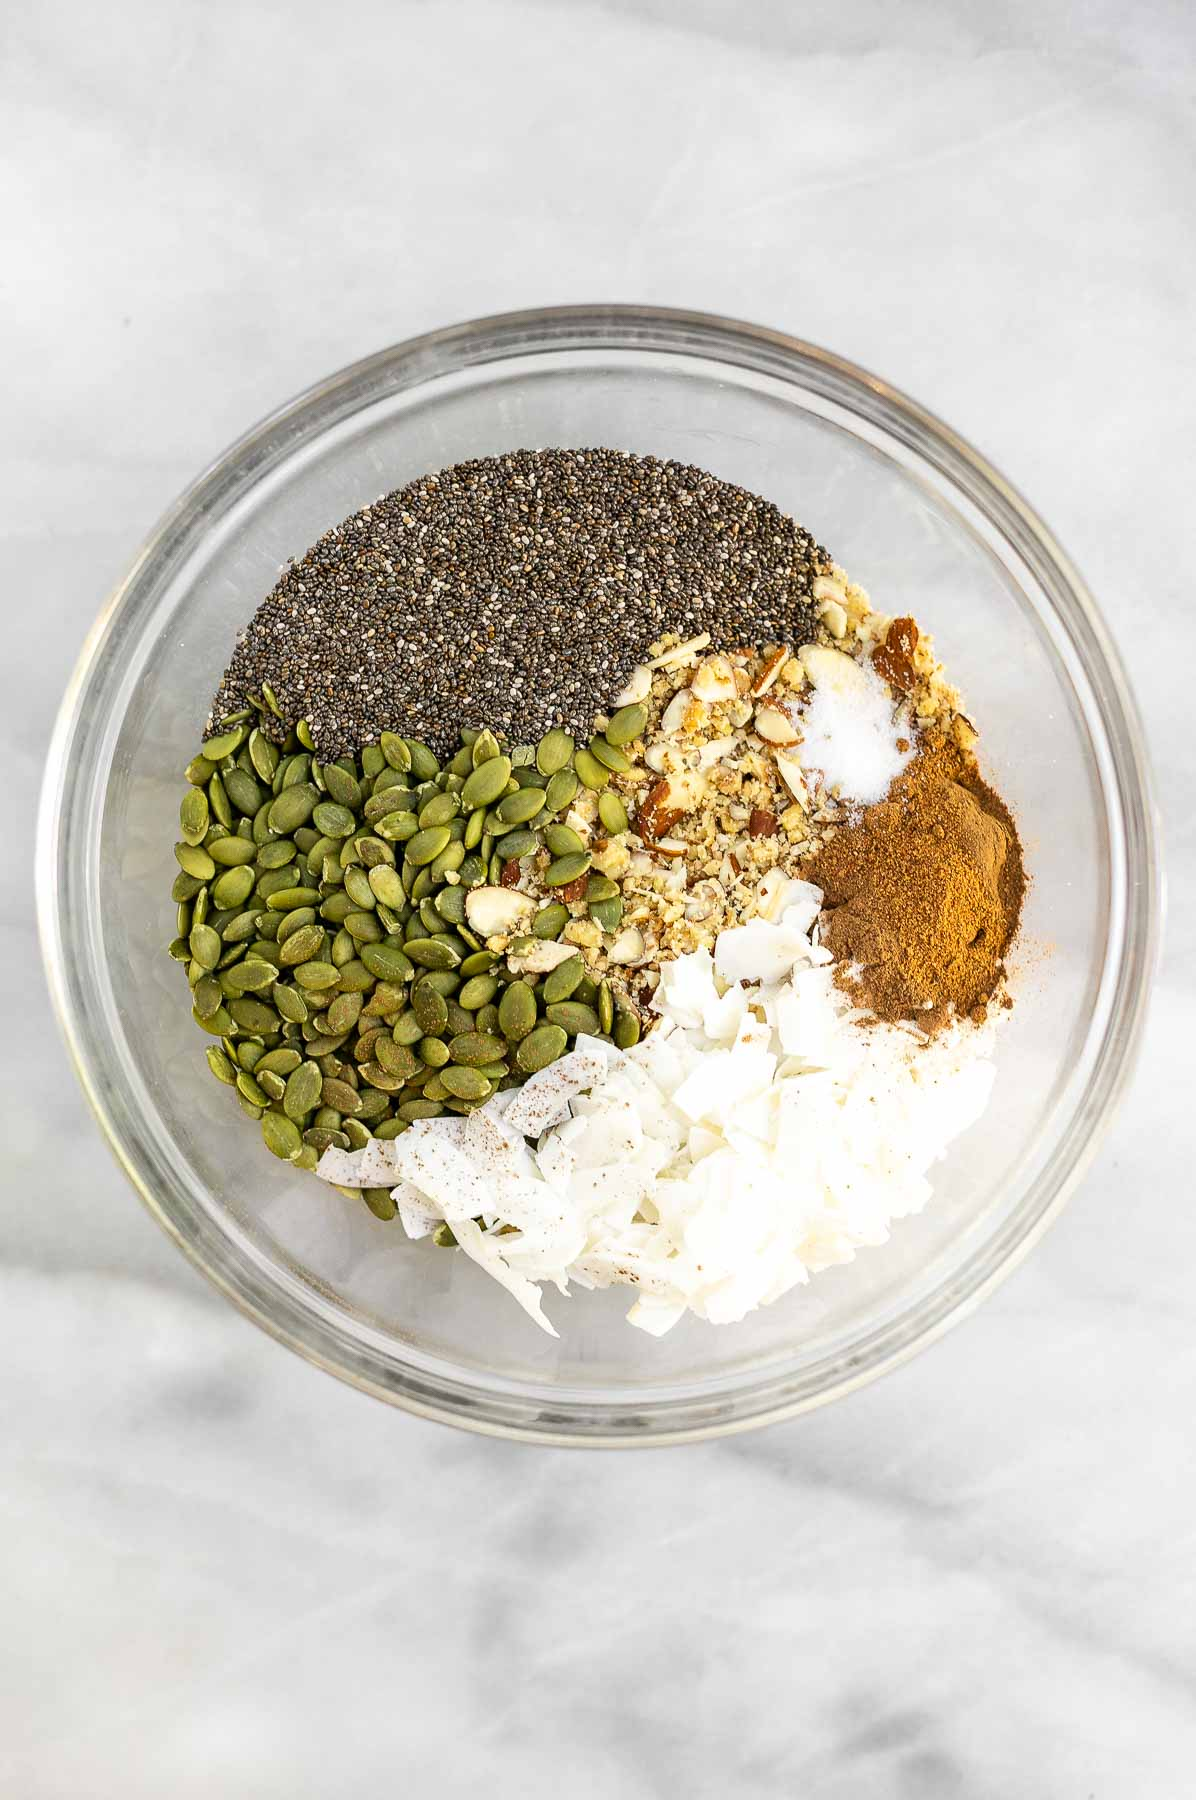 Ingredients for the paleo granola in a bowl.